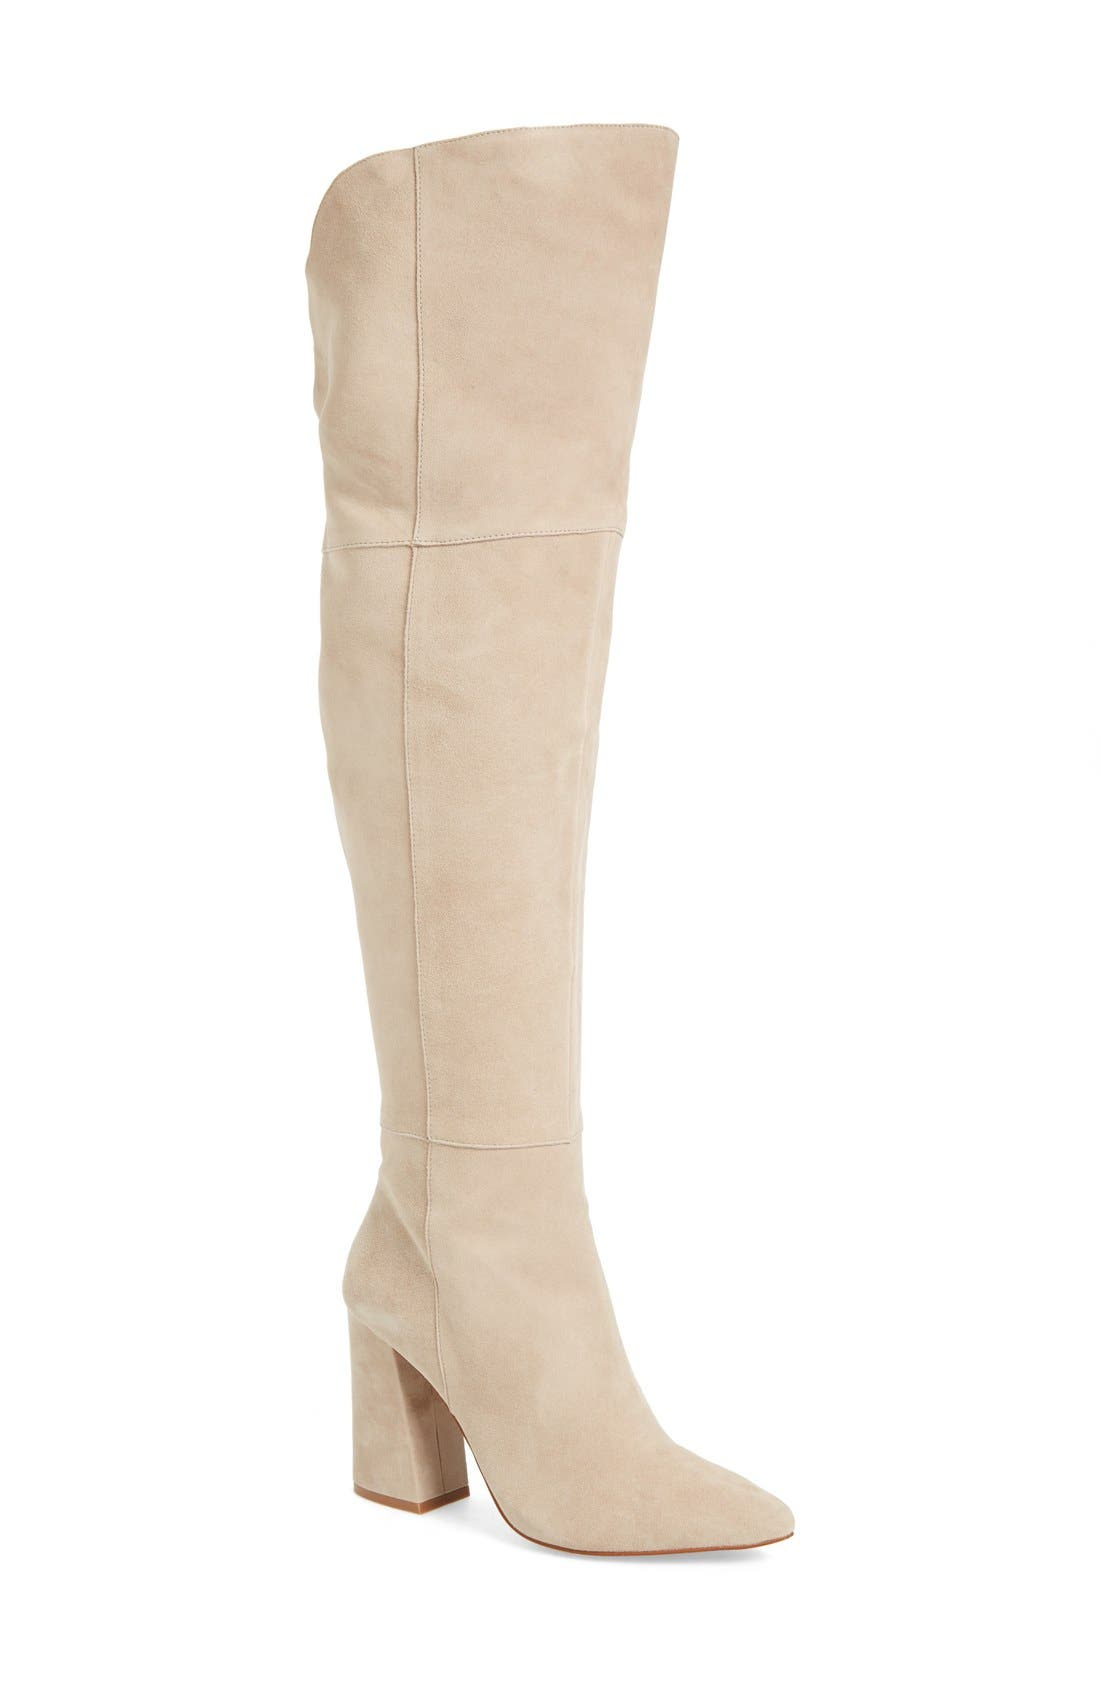 'Saffron' Over the Knee Boot,                             Main thumbnail 1, color,                             Grey Suede